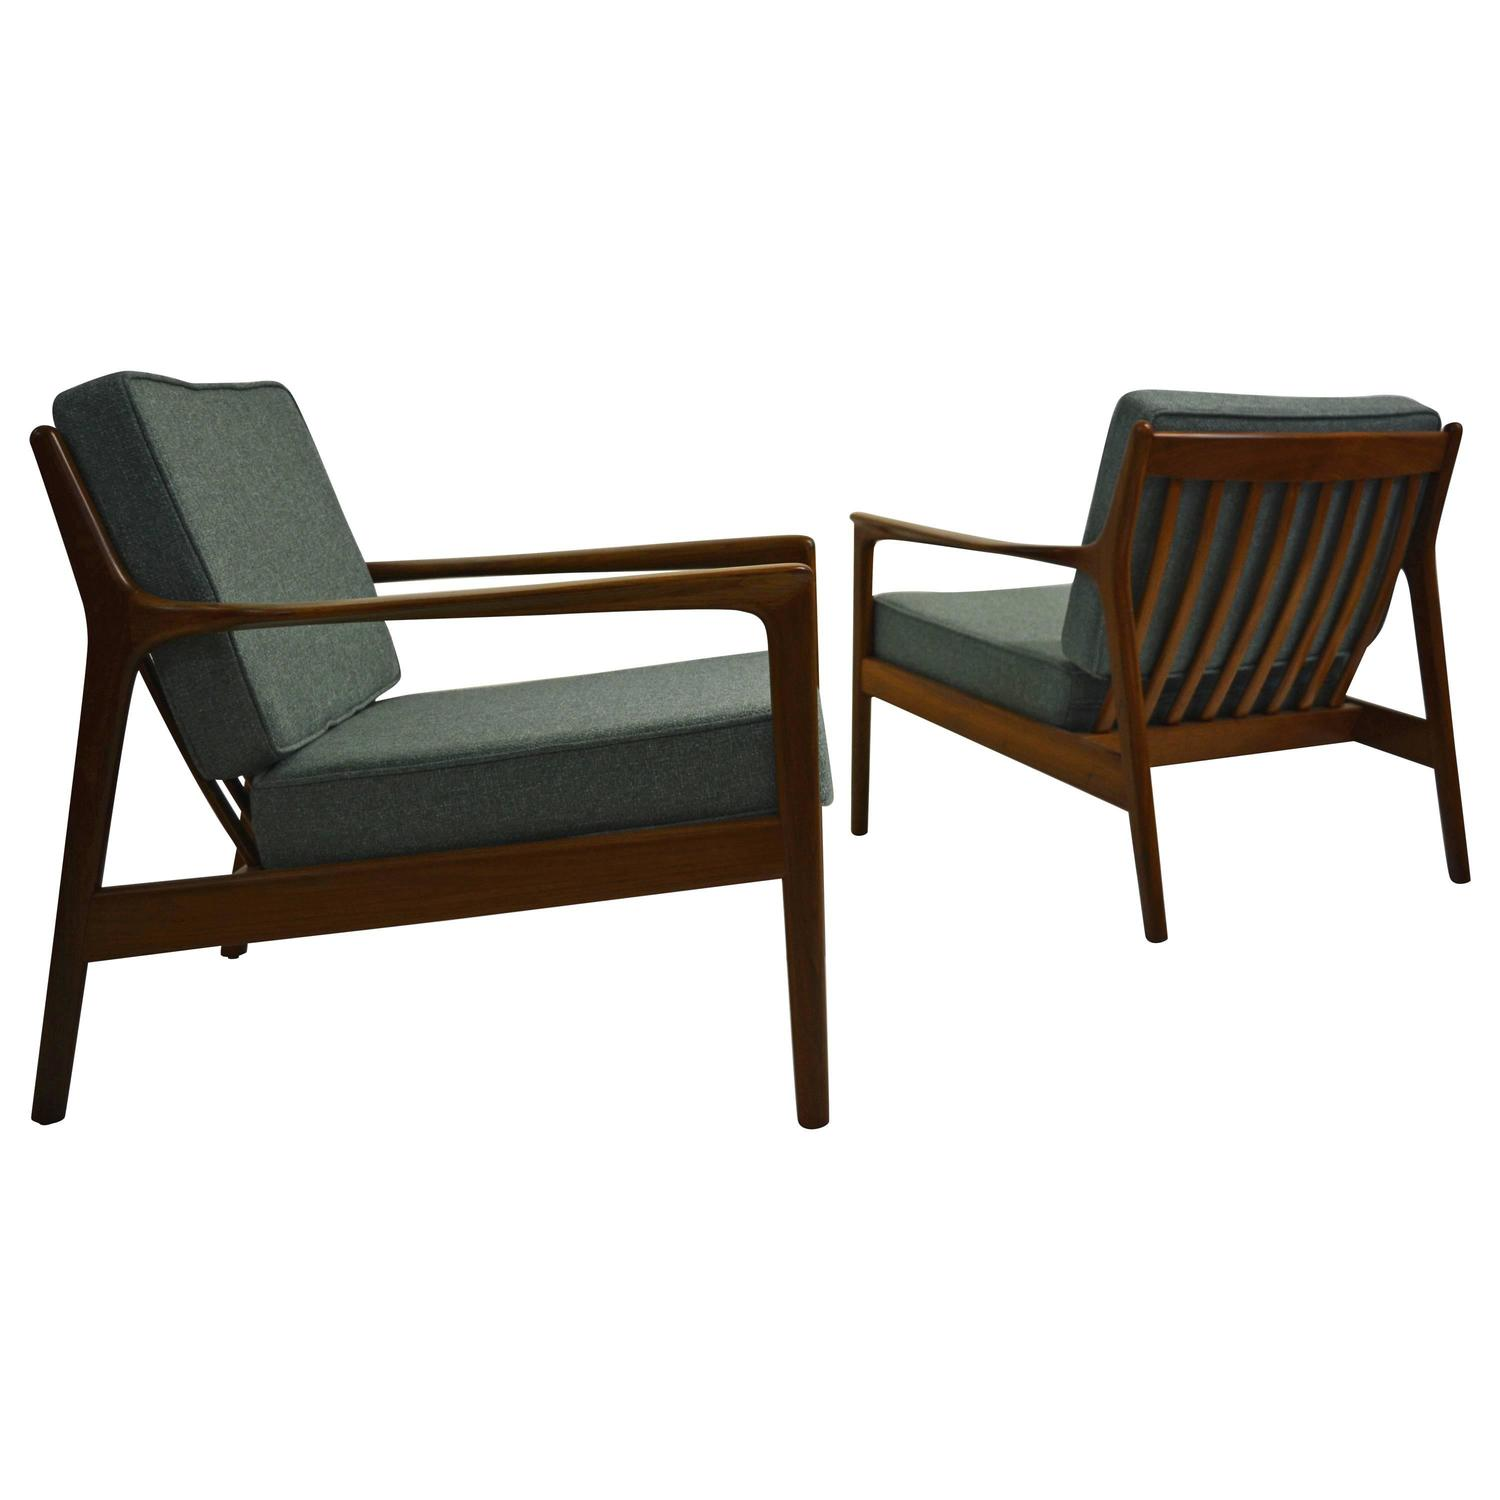 Pair Of Quot Usa 75 Quot Lounge Chairs By Folke Ohlsson For Dux